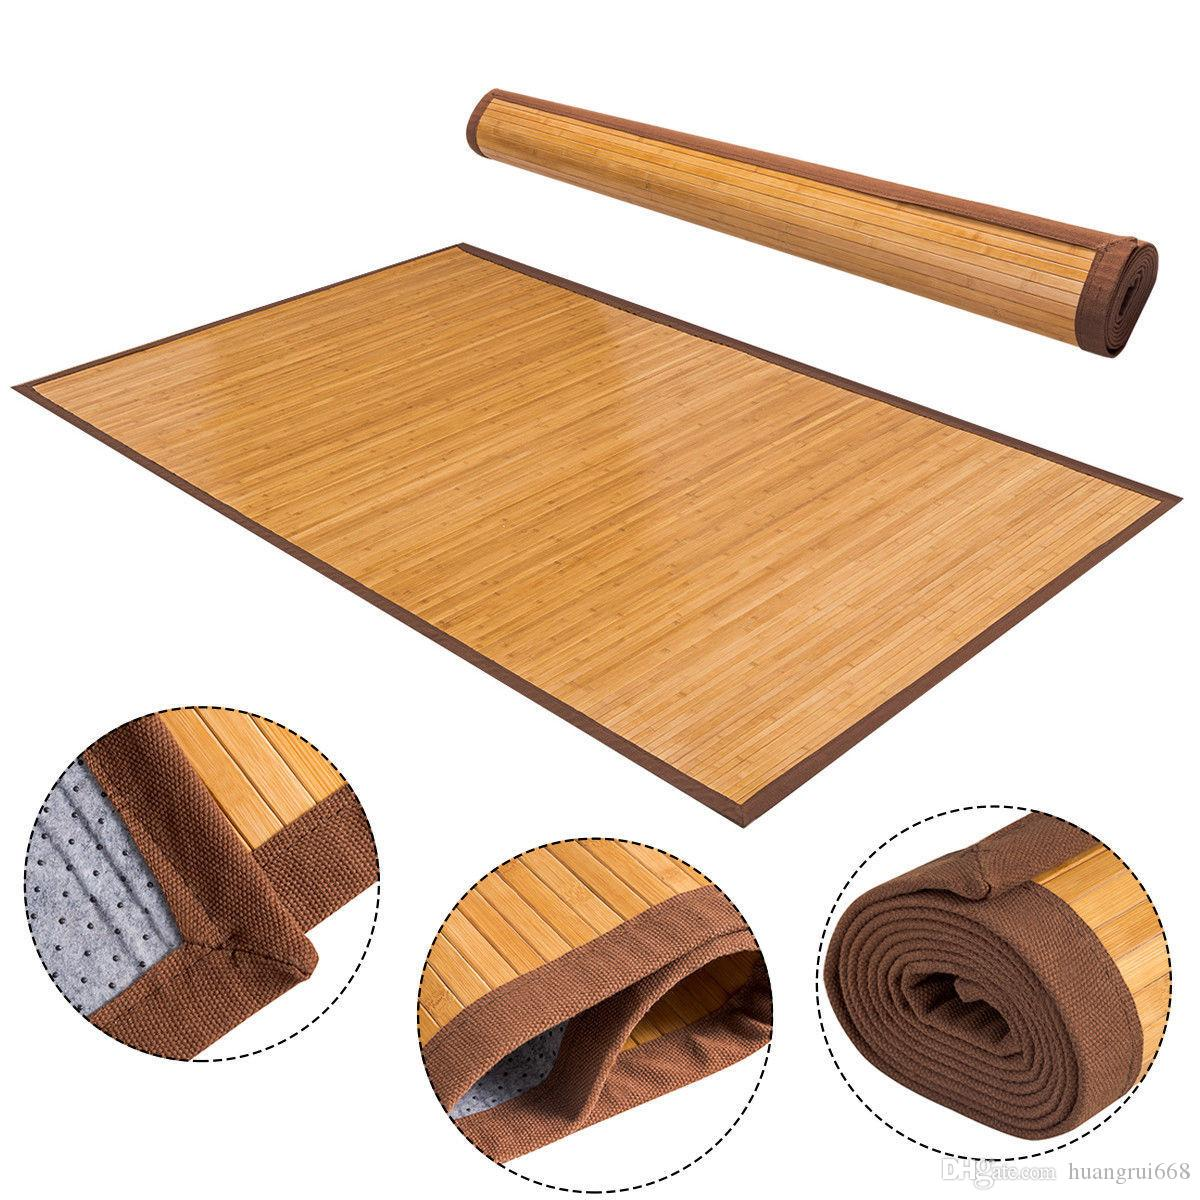 2019 5 x 8 bamboo area rug floor carpet natural bamboo wood indoor outdoor new from huangrui668 46 24 dhgate com